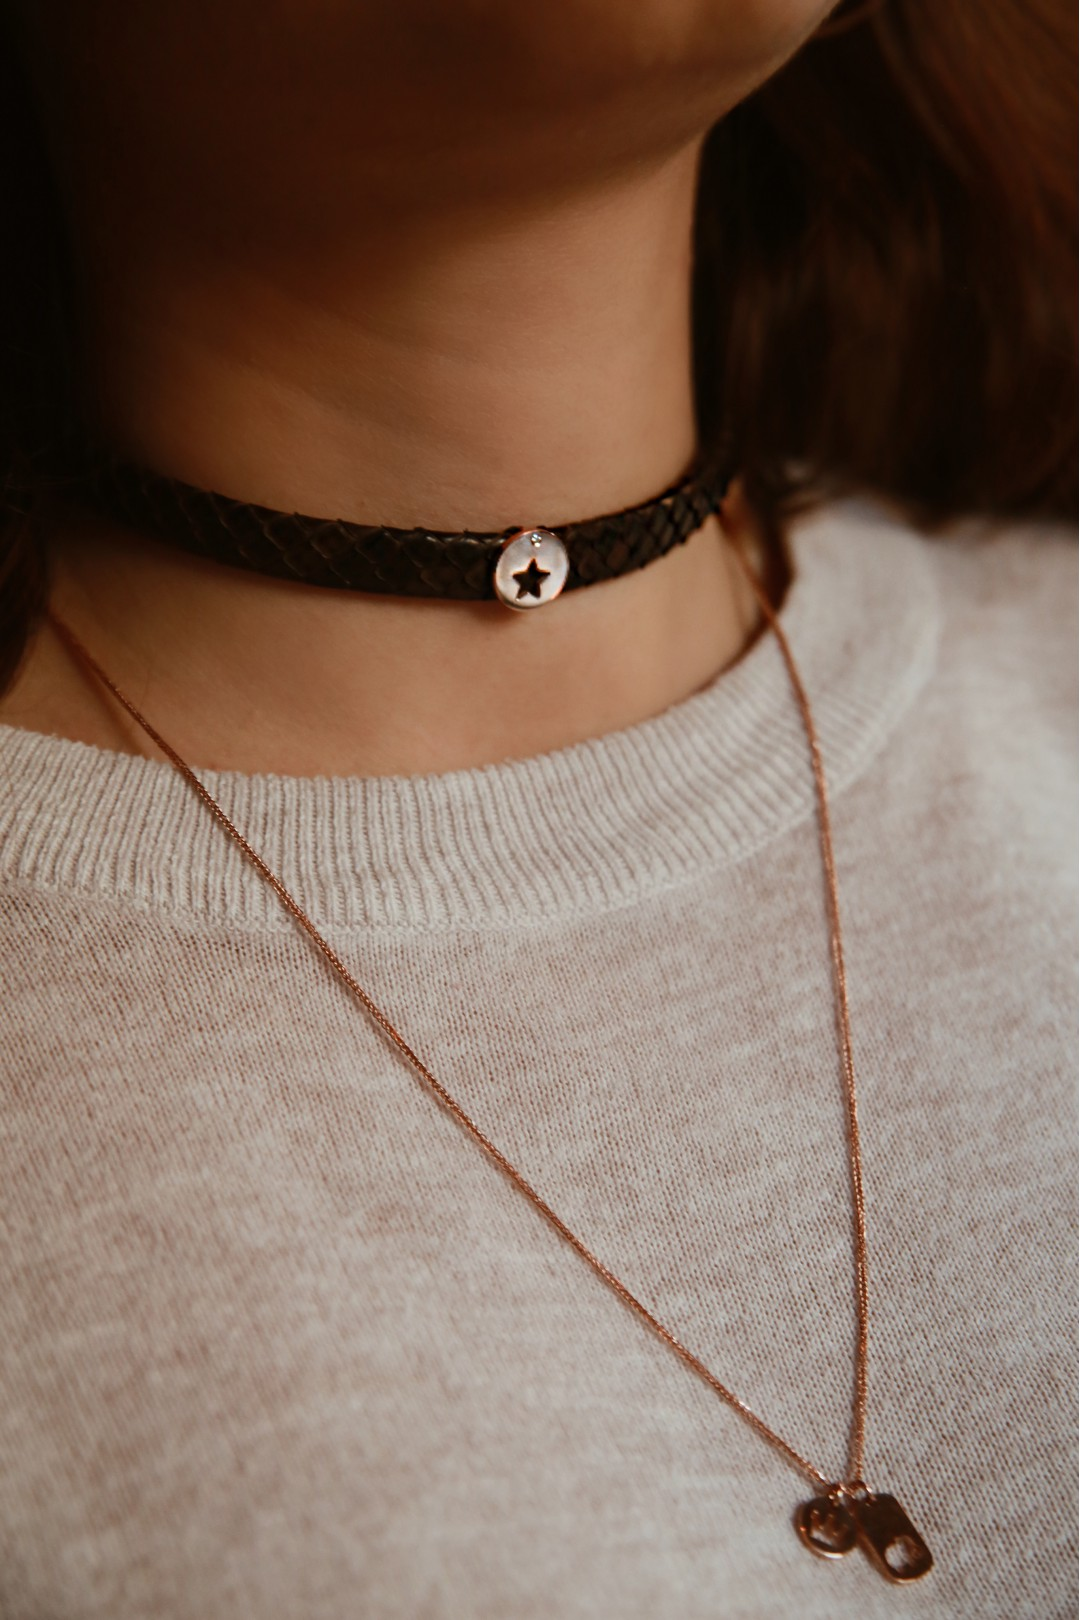 STAR BROWN LEATHER GOLD AND DIAMOND CHOKER NECKLACE